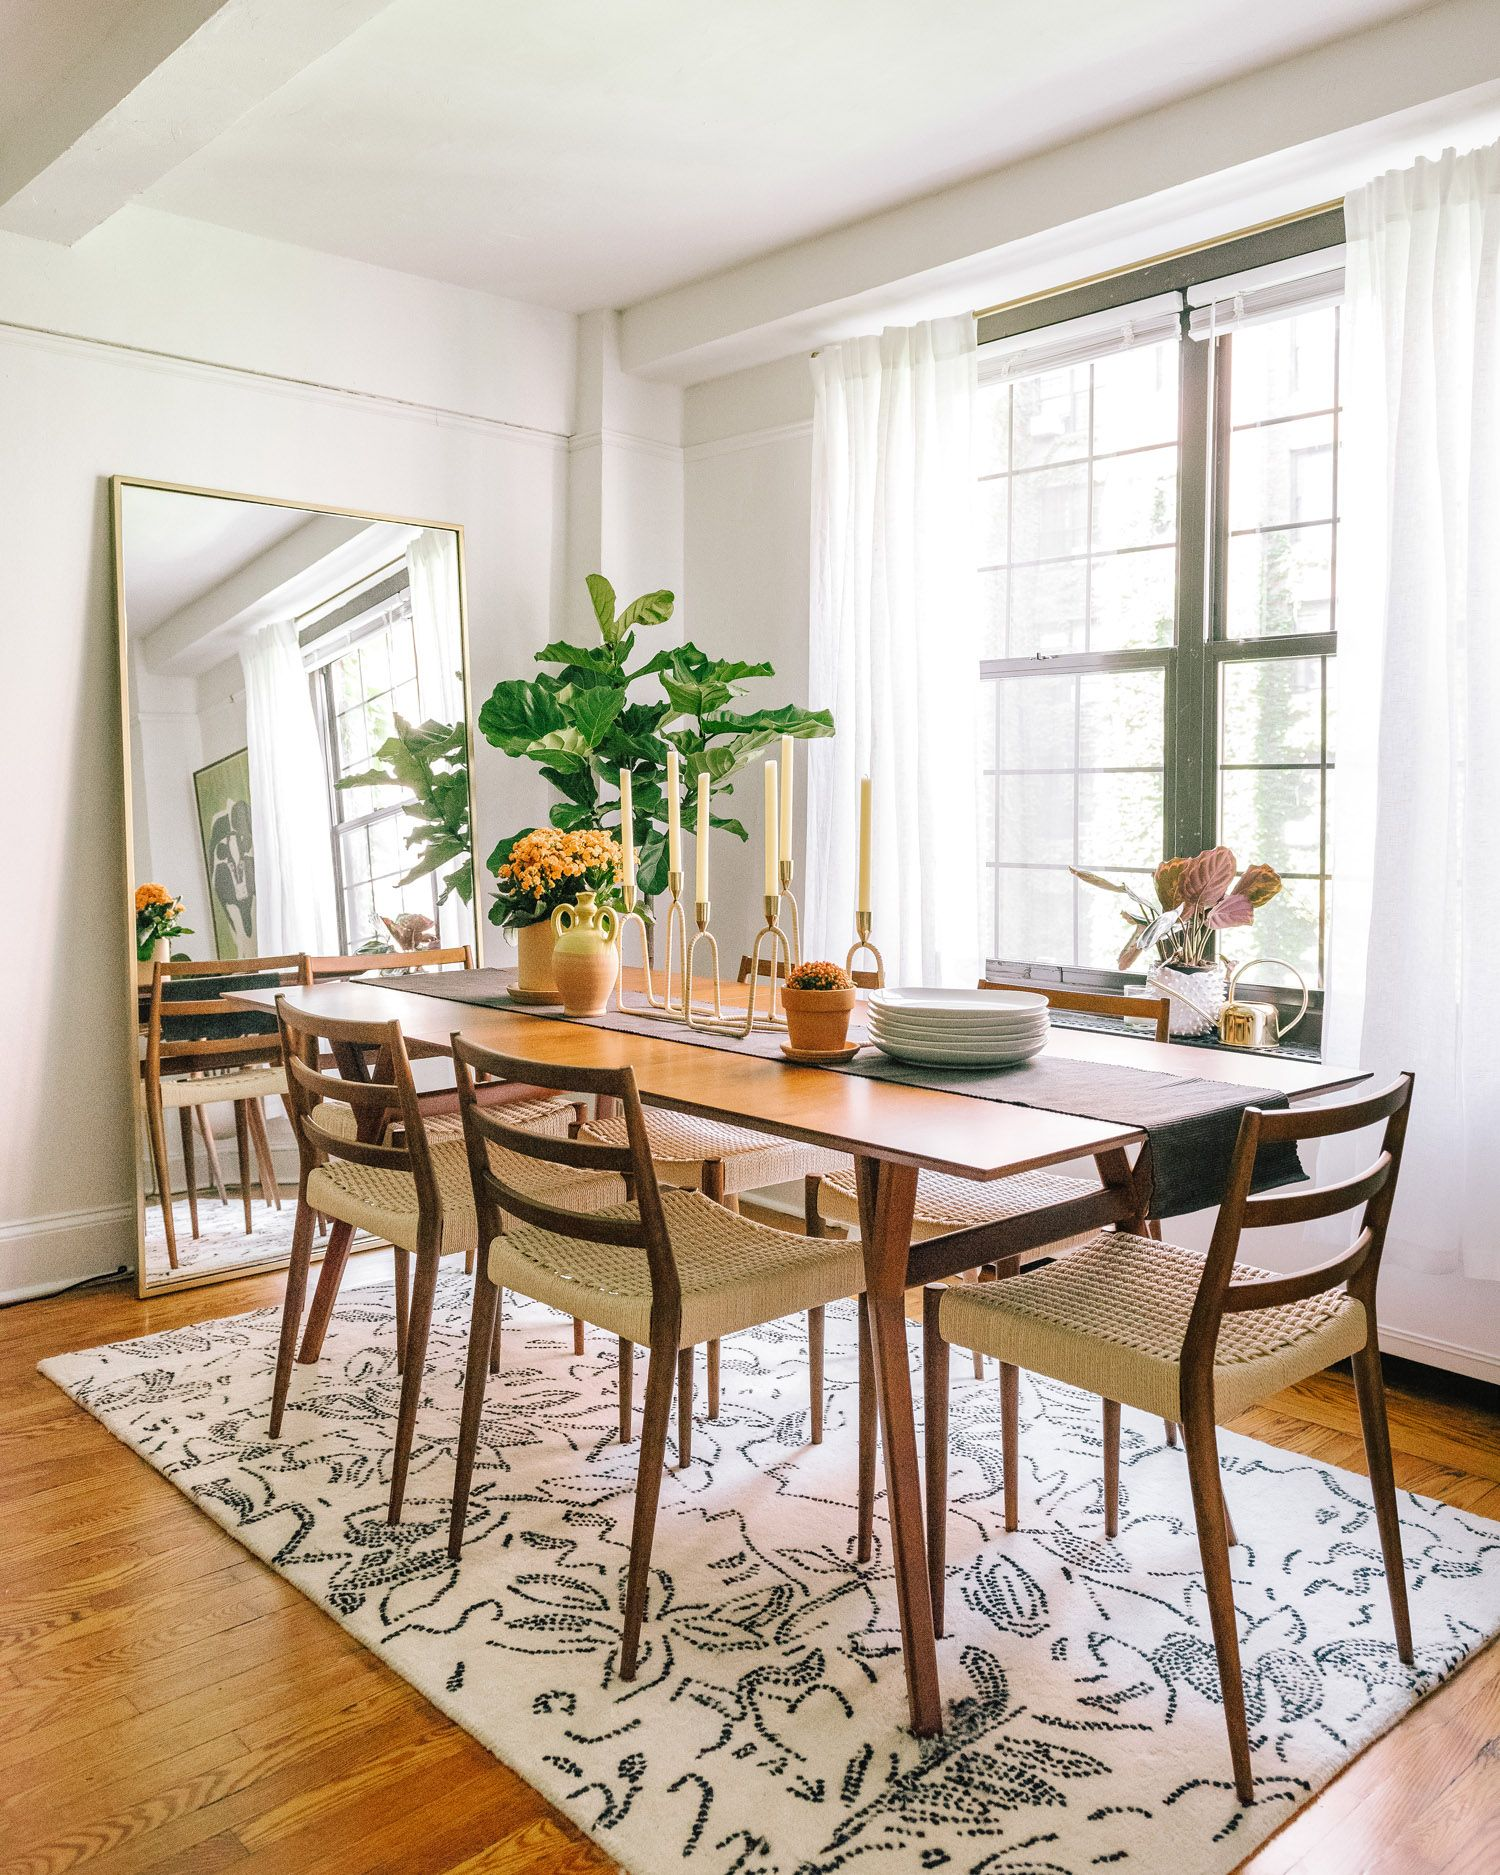 The Mid Century Expandable Dining Room Table Leaves Plenty Of Room